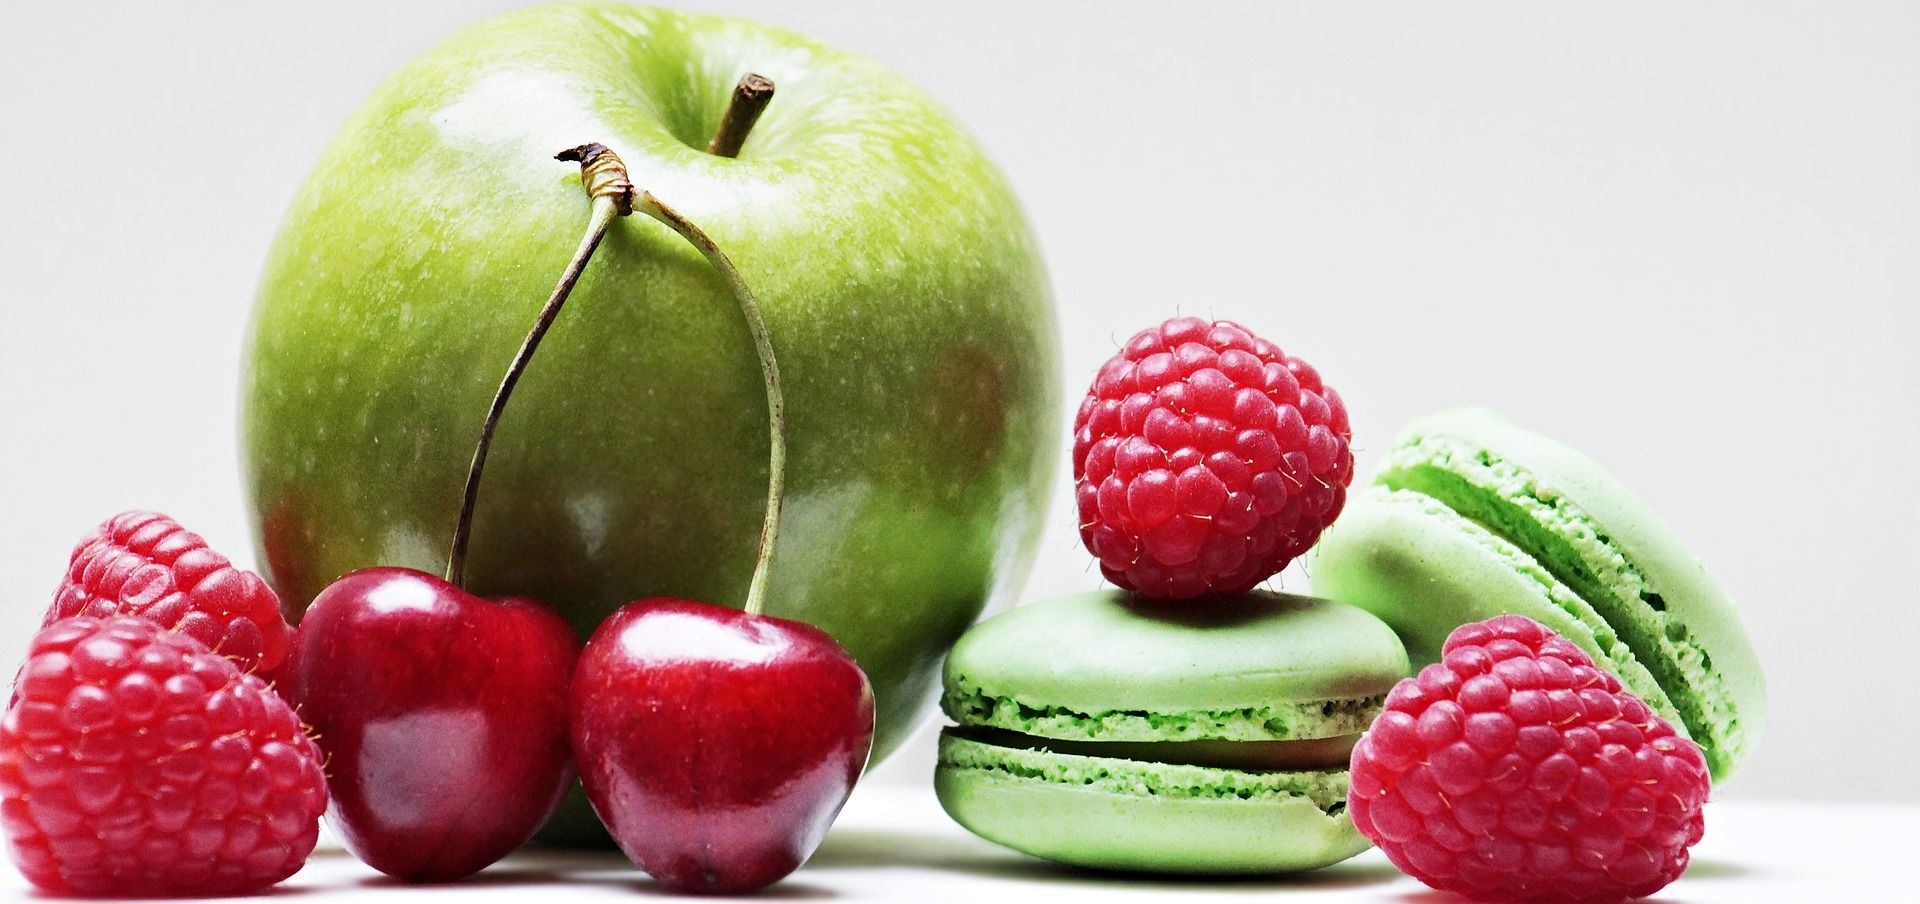 Green Apples, cherries with Raspberries and green macrons